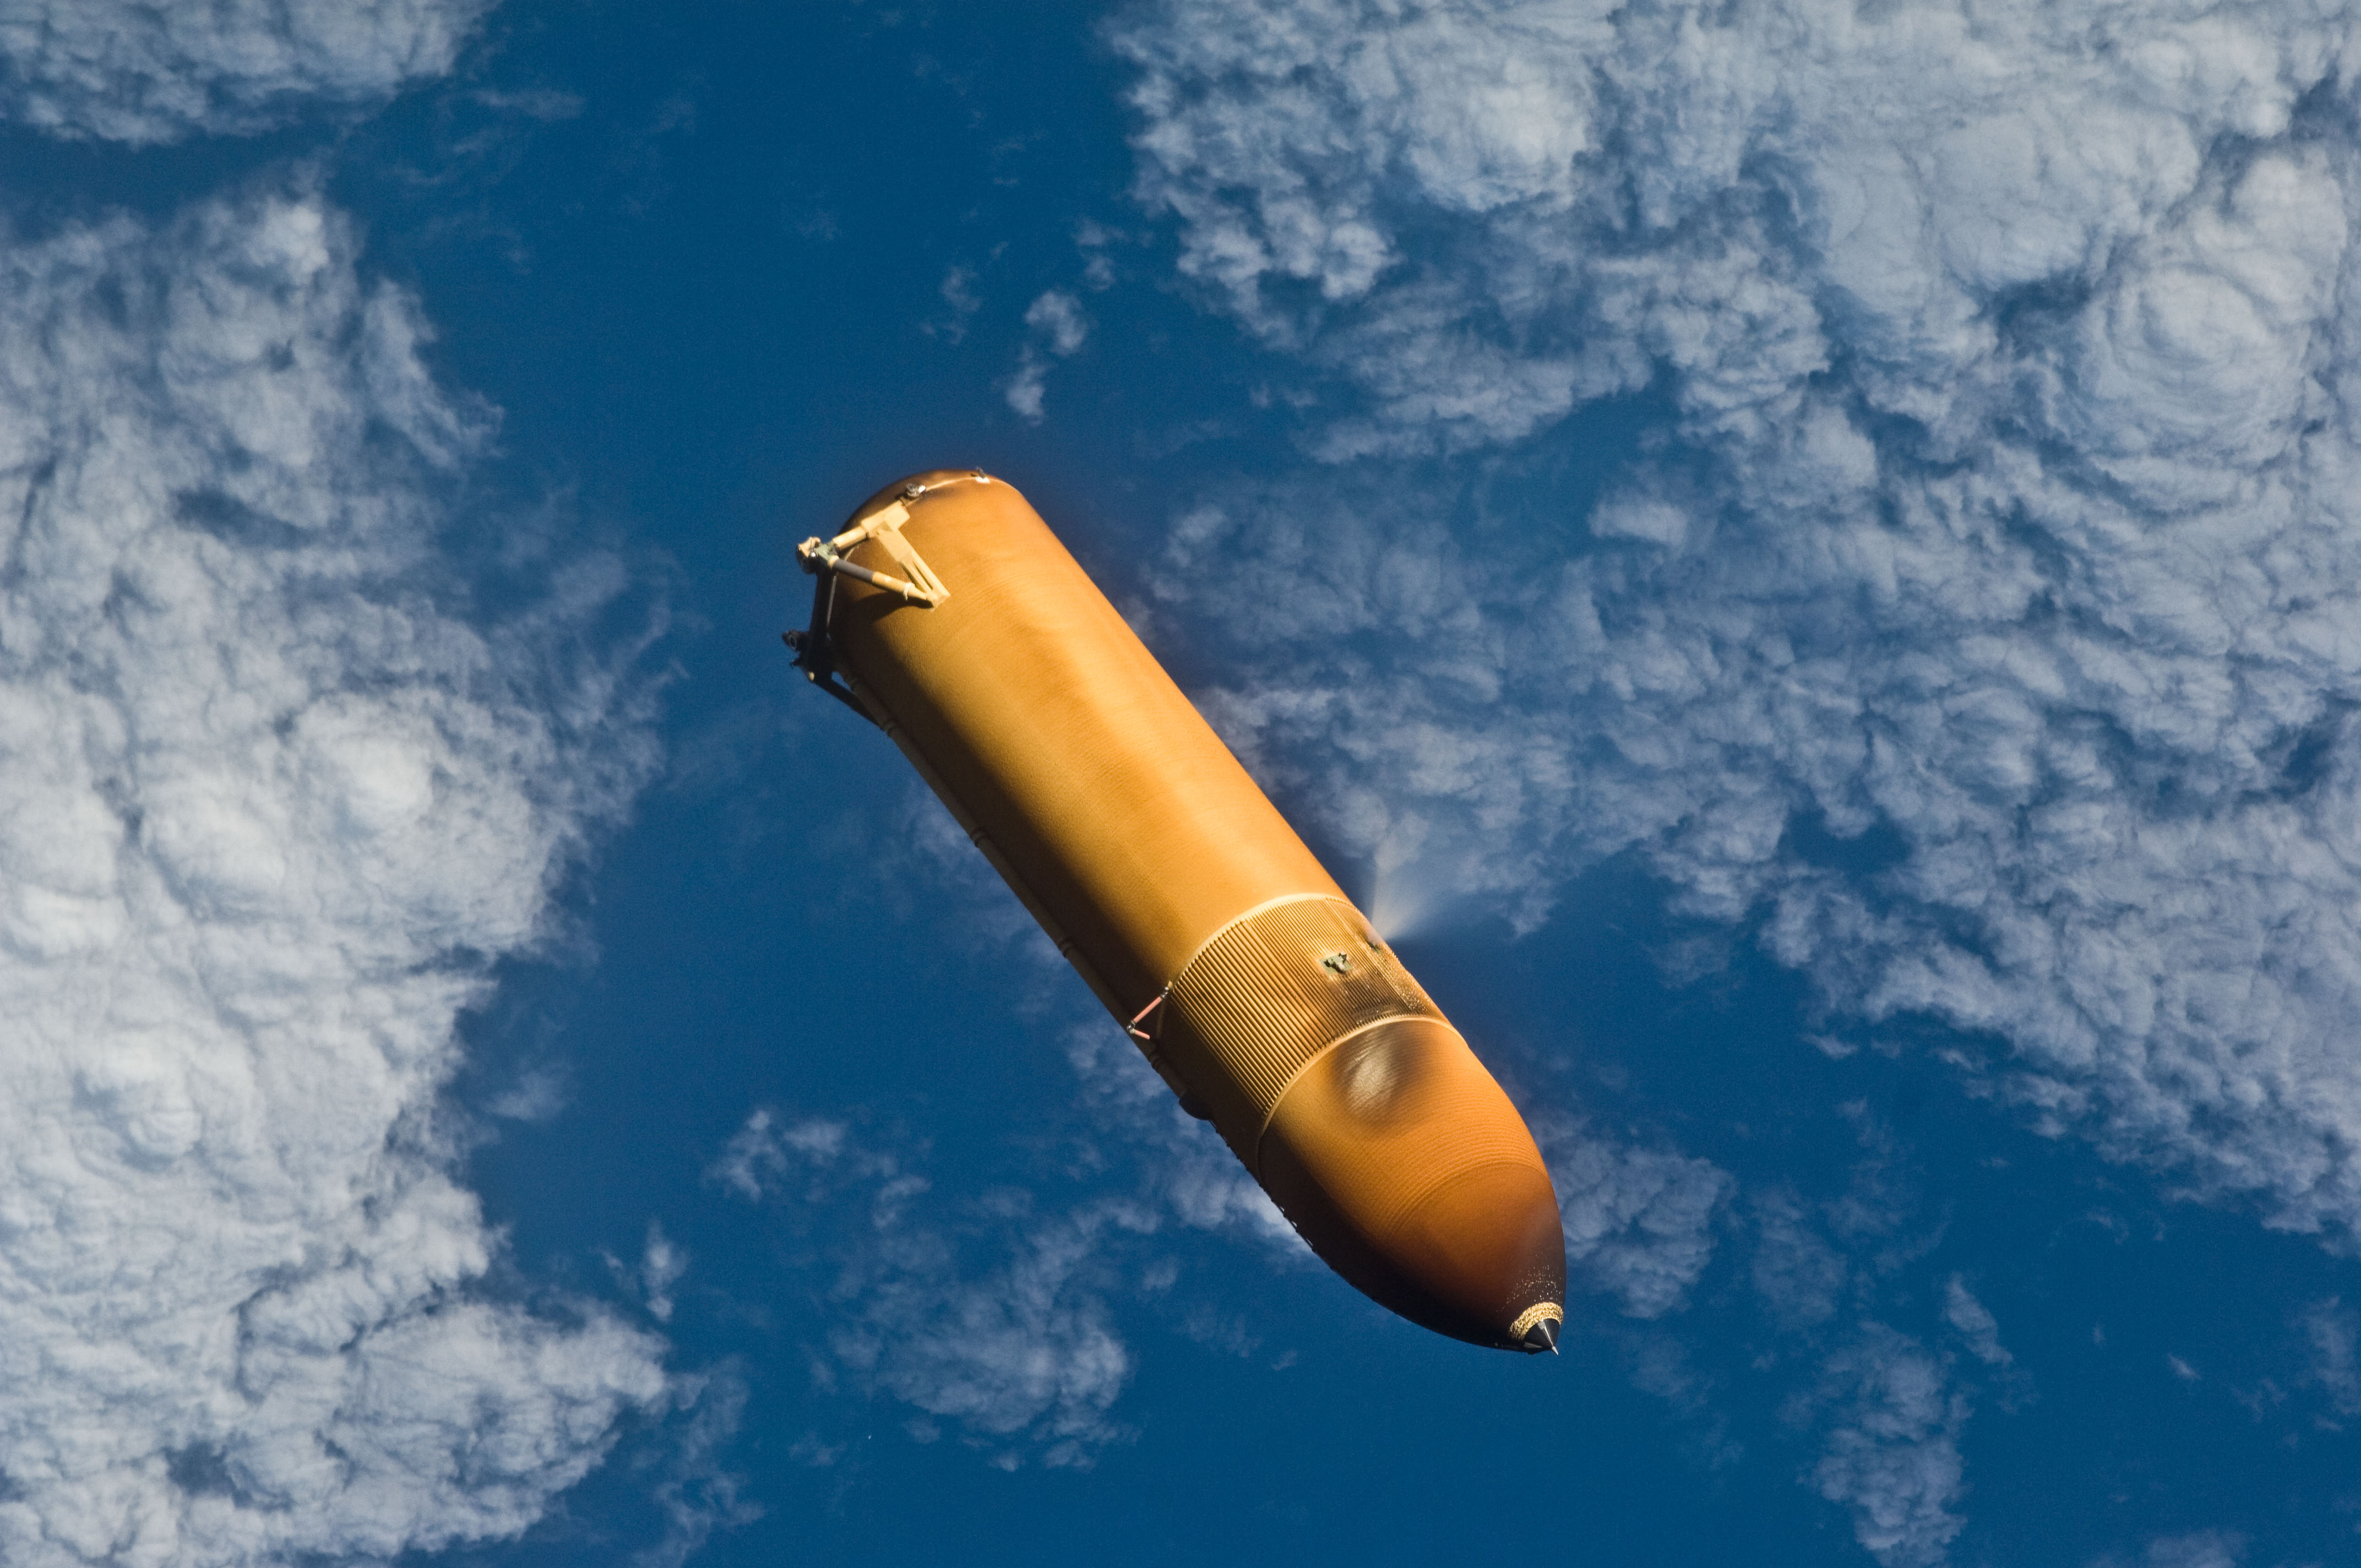 separation of booster rockets and space shuttle external tank - photo #2